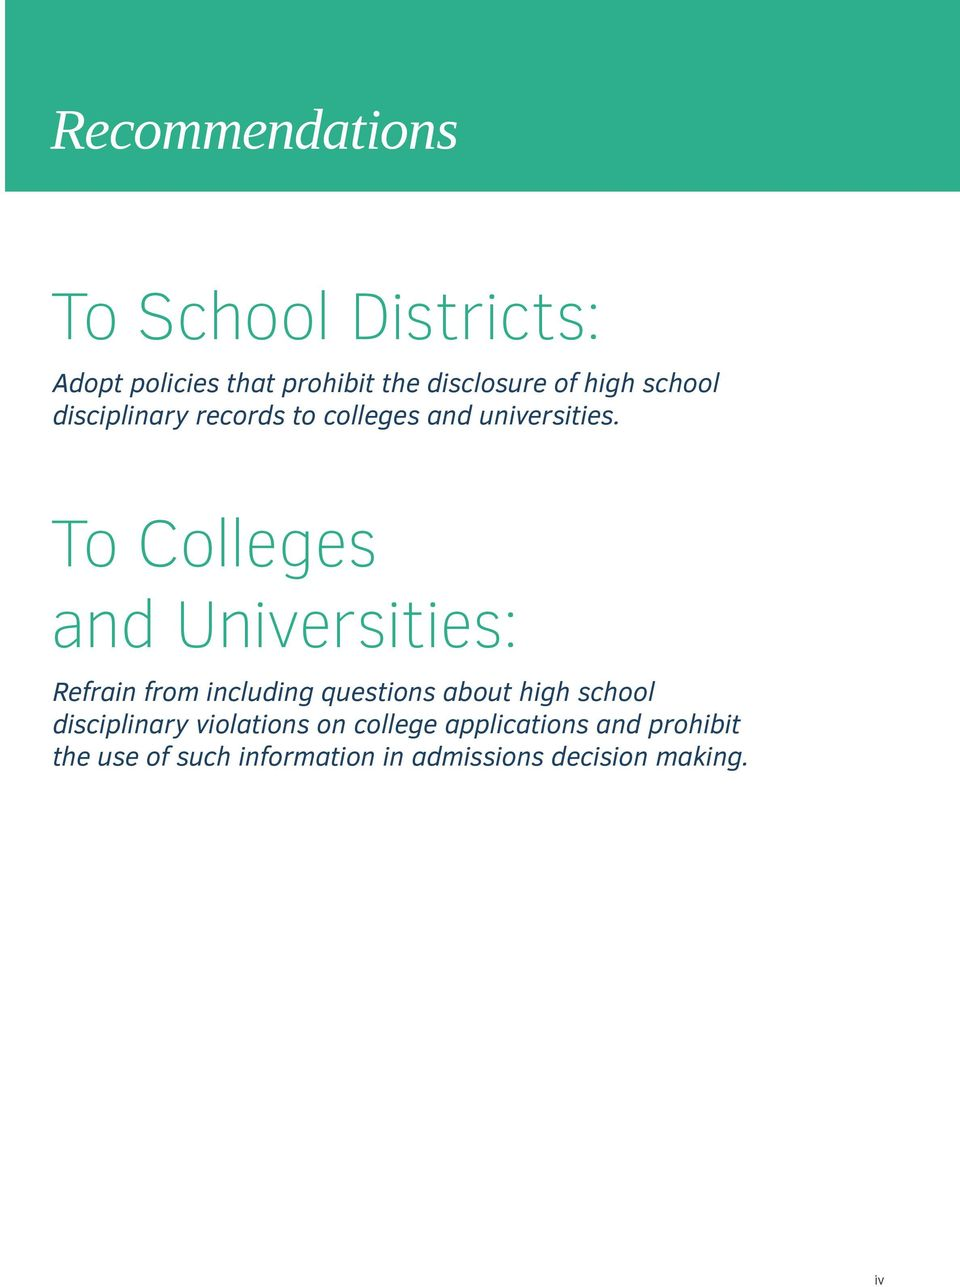 To Colleges and Universities: Refrain from including questions about high school